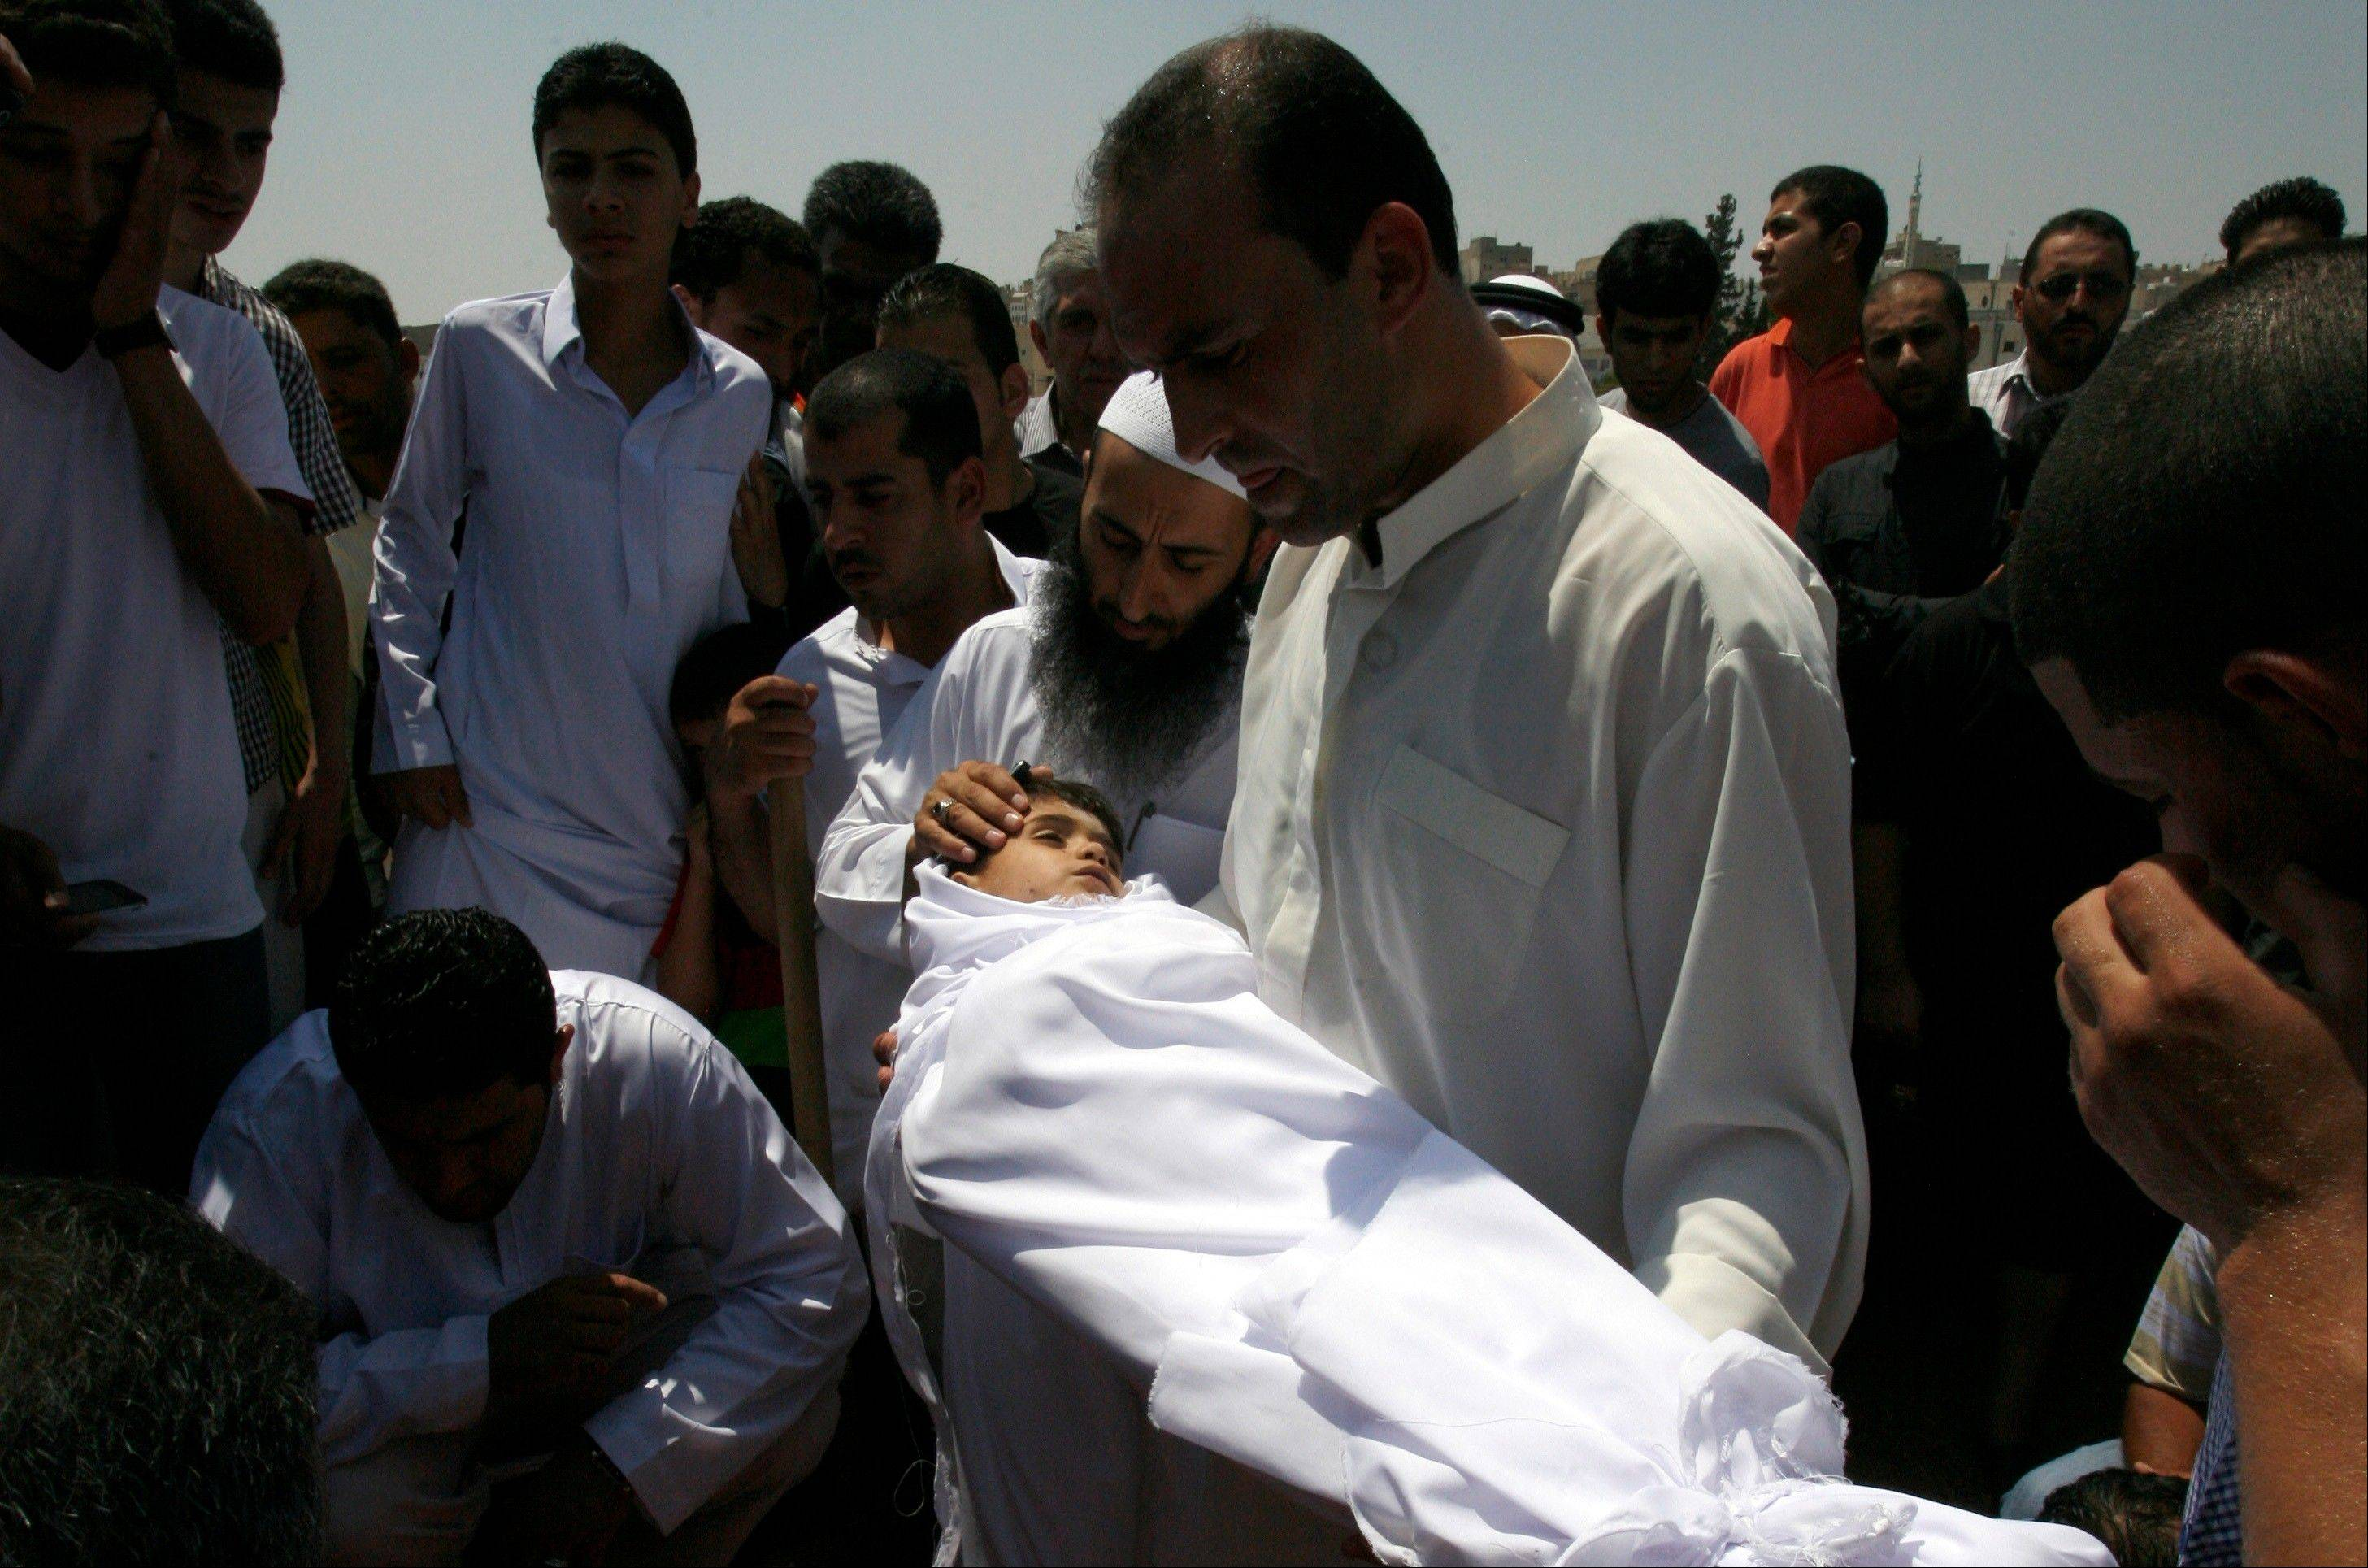 Associated Press A relative holds the body of a six year old Syrian boy Bilal El-Lababidi during his funeral Friday in Ramtha, Jordan.